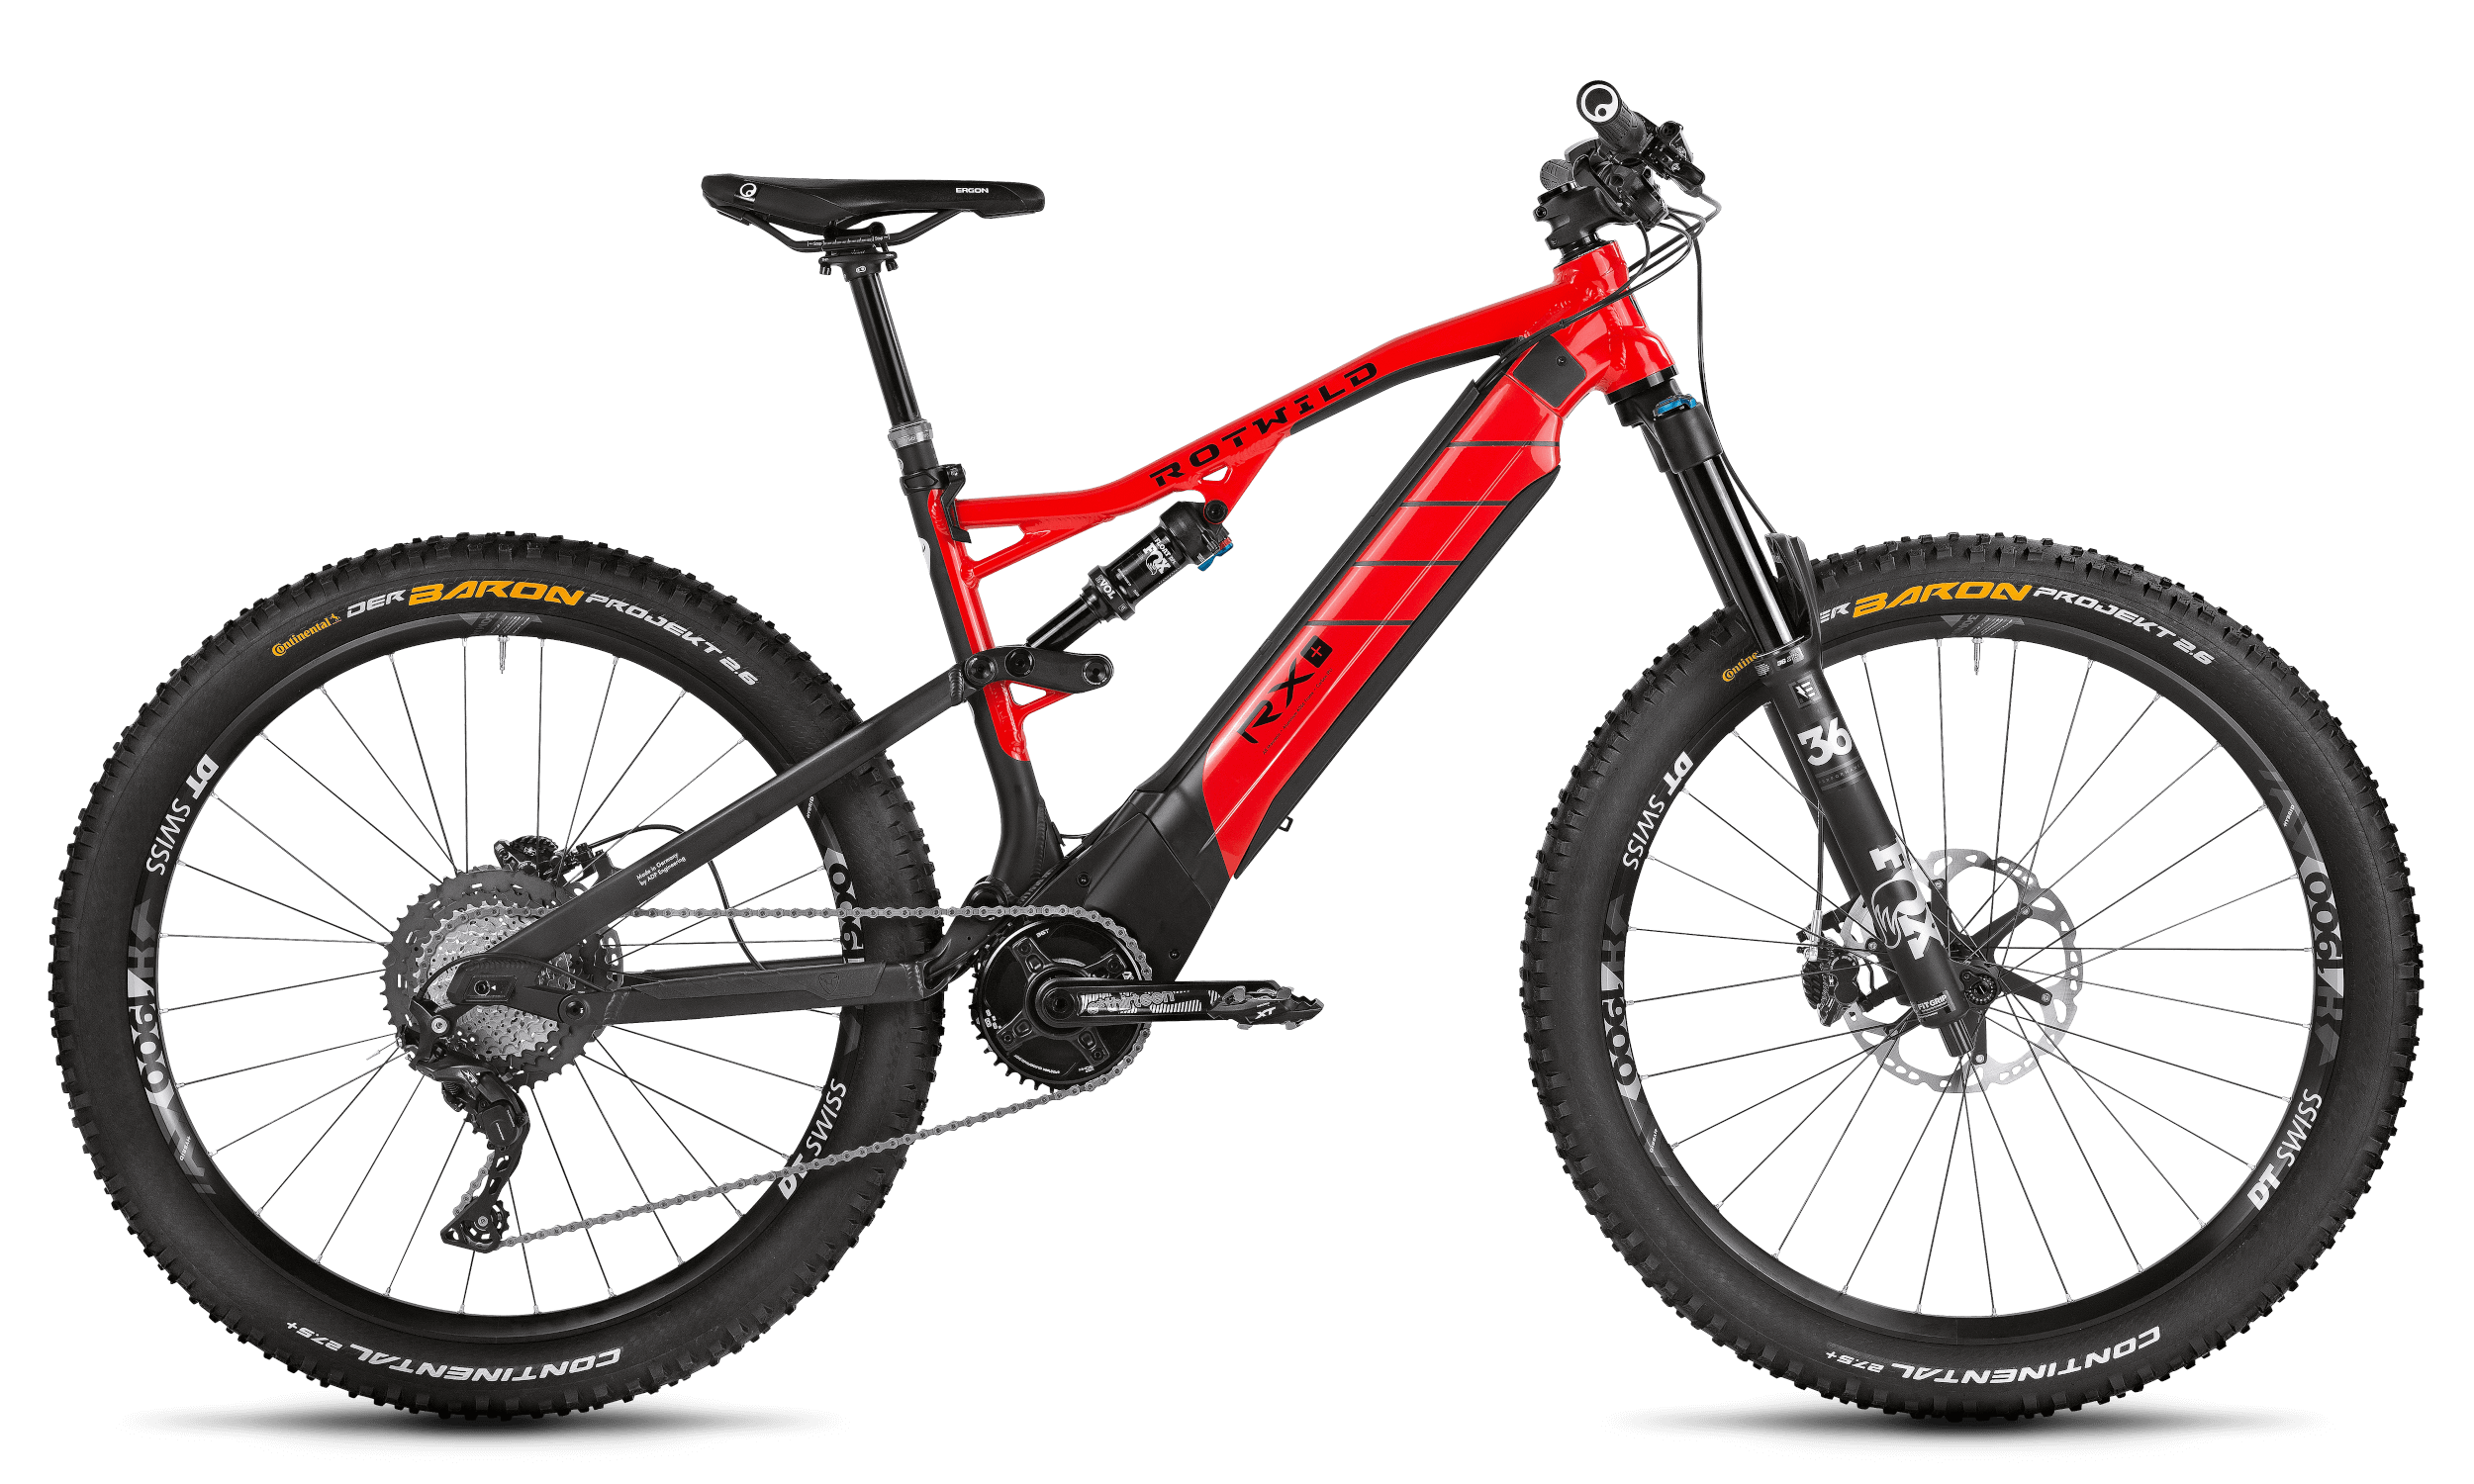 R.X+ TRAIL (27.5) PRO - Red - S - R.X+ TRAIL (27.5) PRO - Red - S